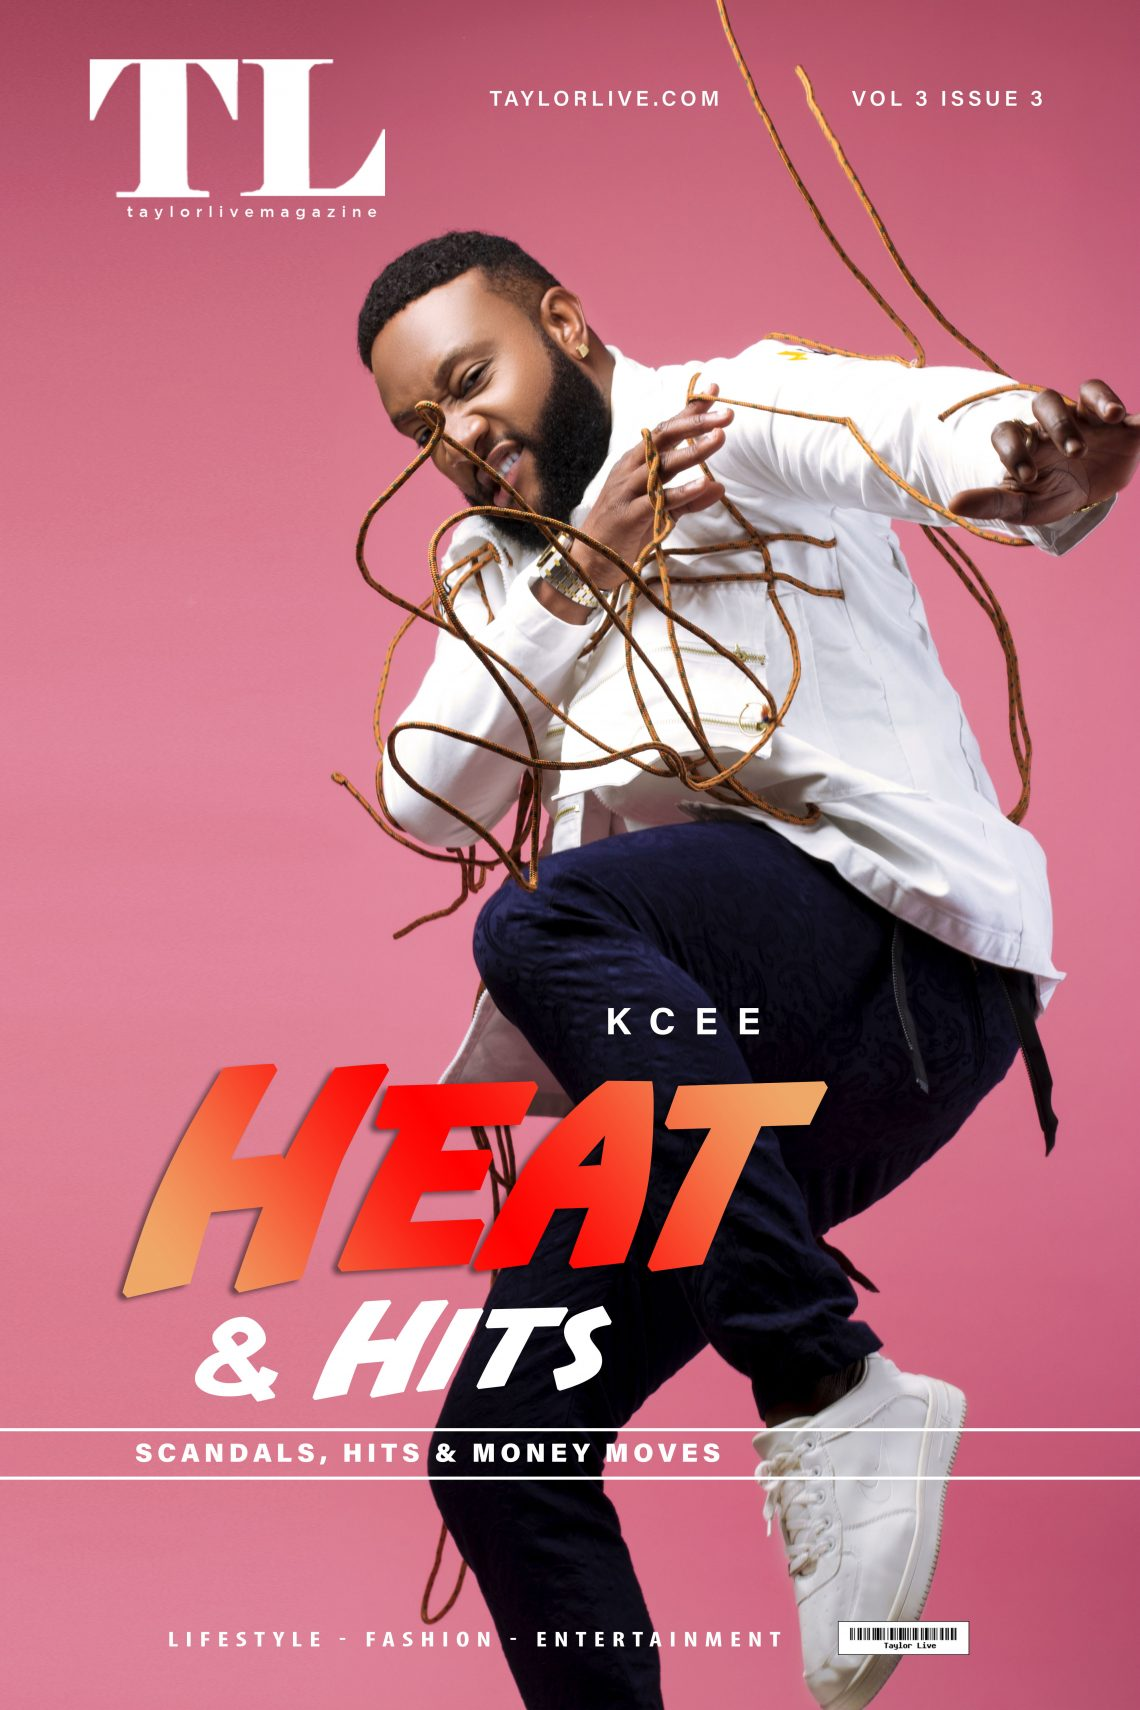 HEAT & HITS – Kcee Covers Taylor Live Magazine's Latest Issue